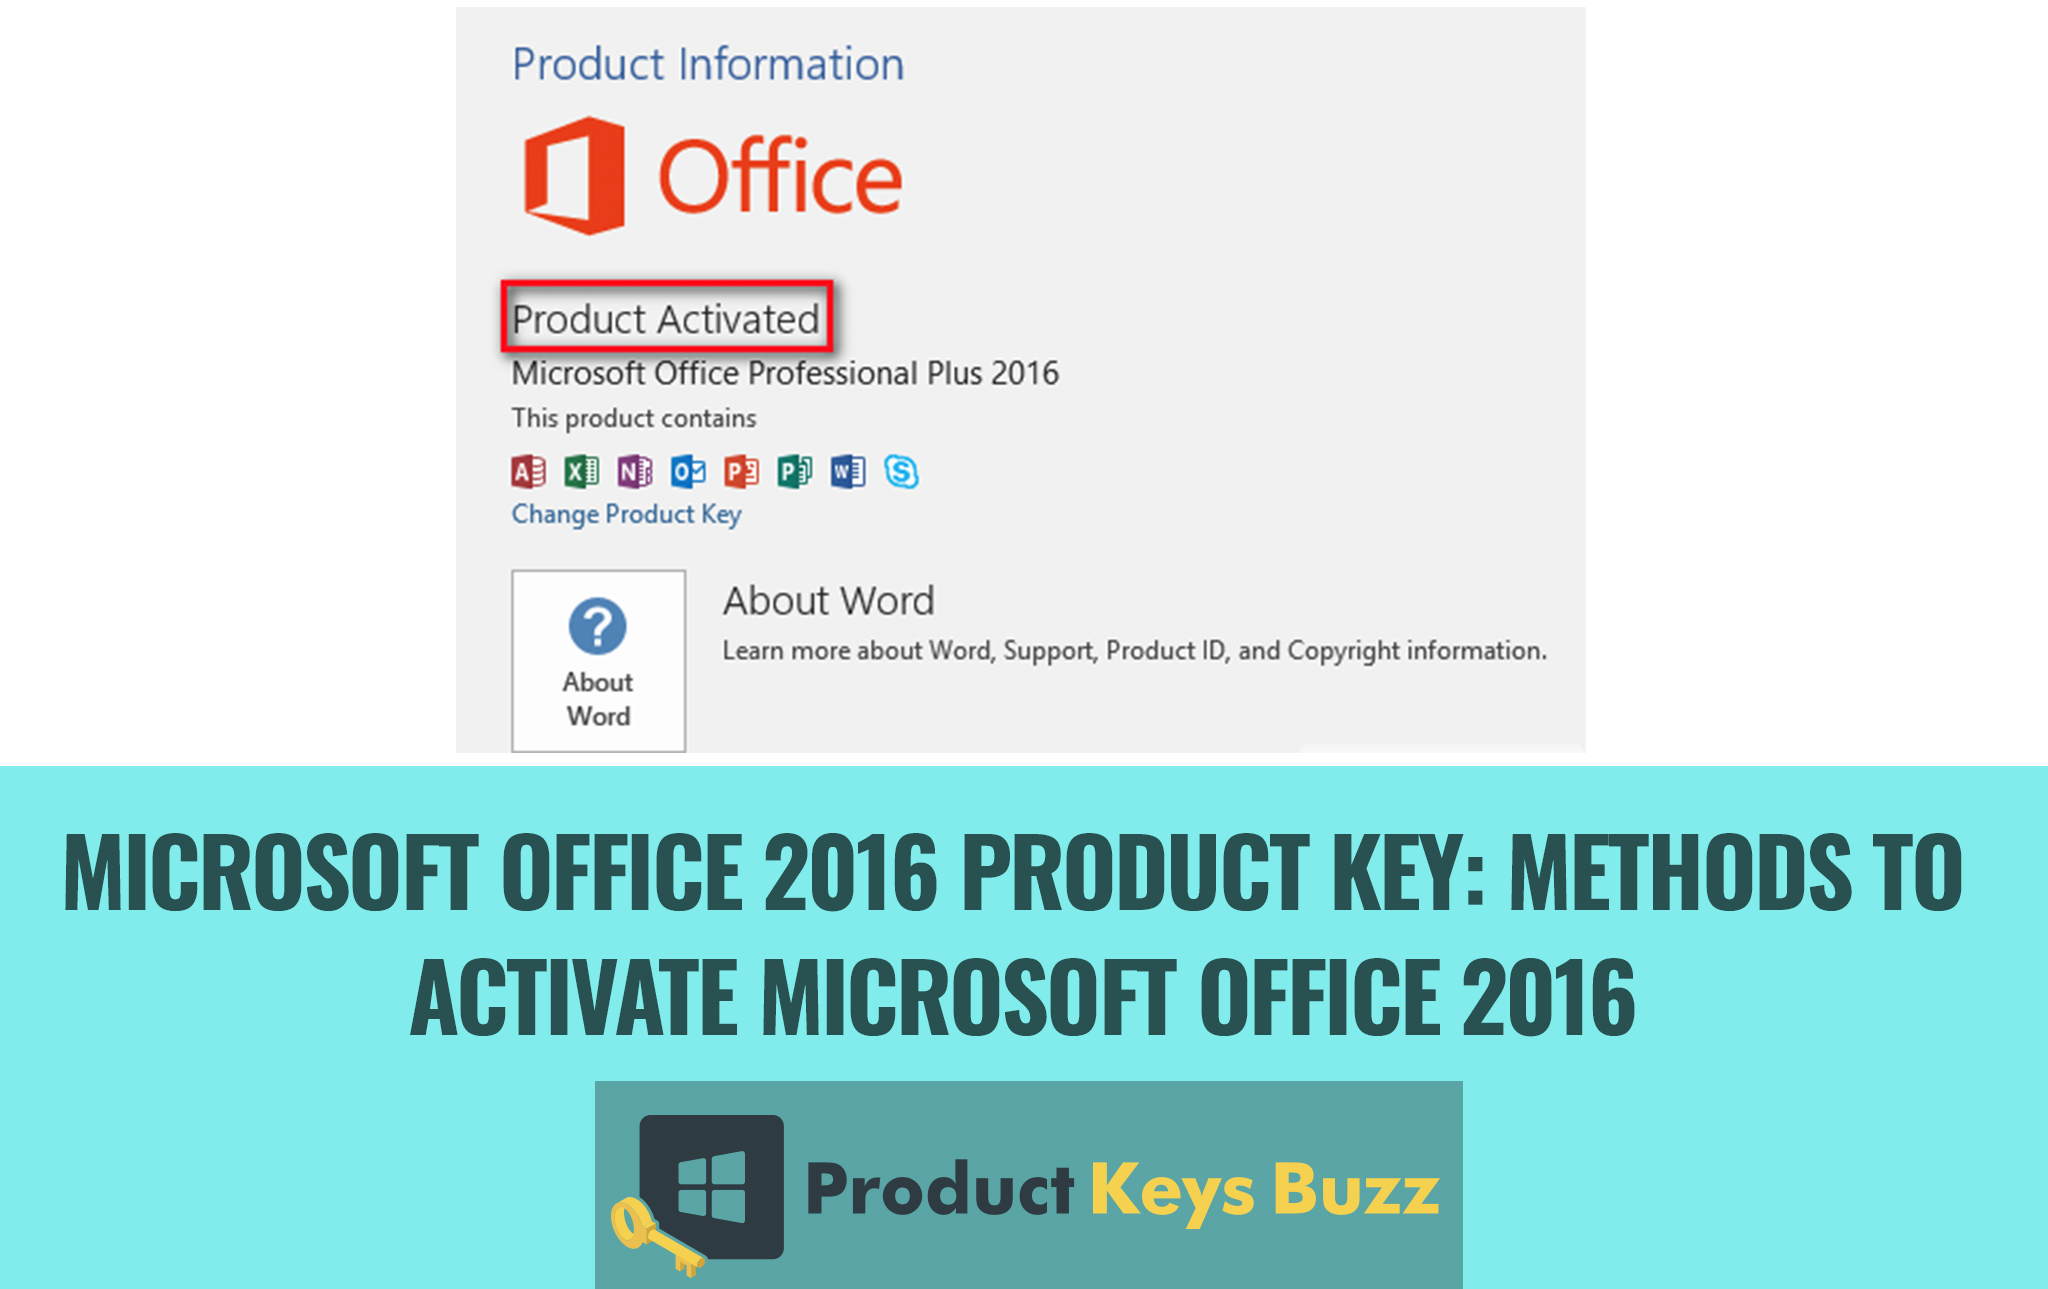 ms office 2016 free download full version with product key for windows 7 64 bit